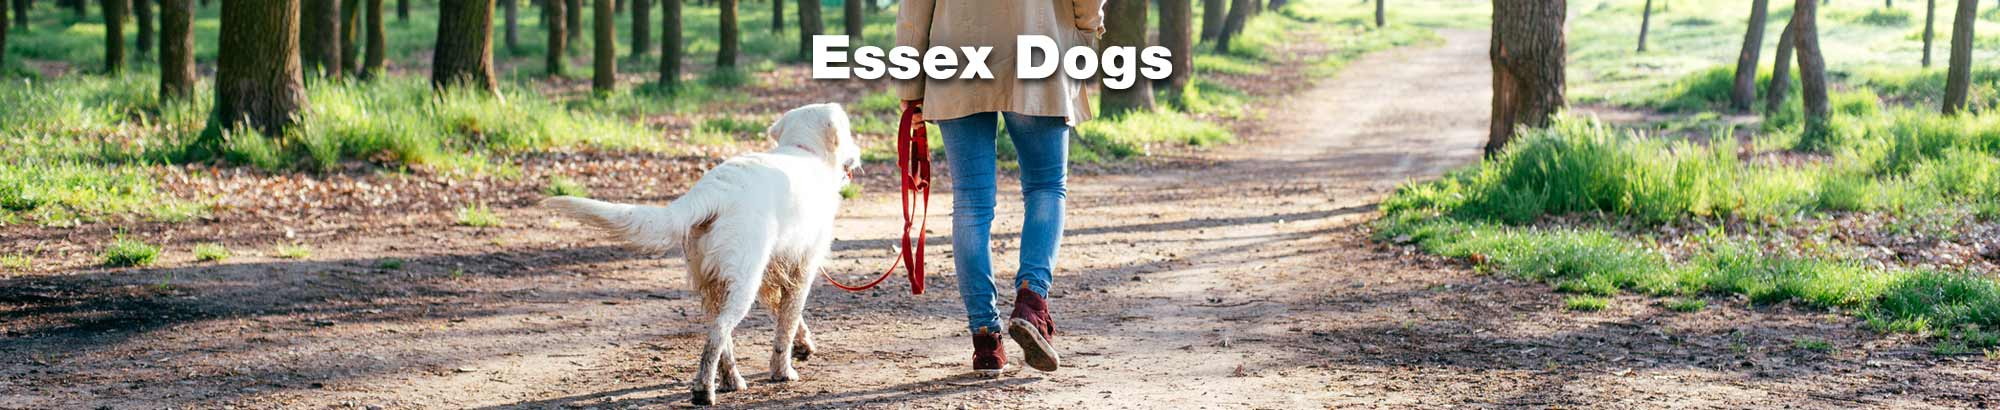 Essex Dogs for all things dog in Esse